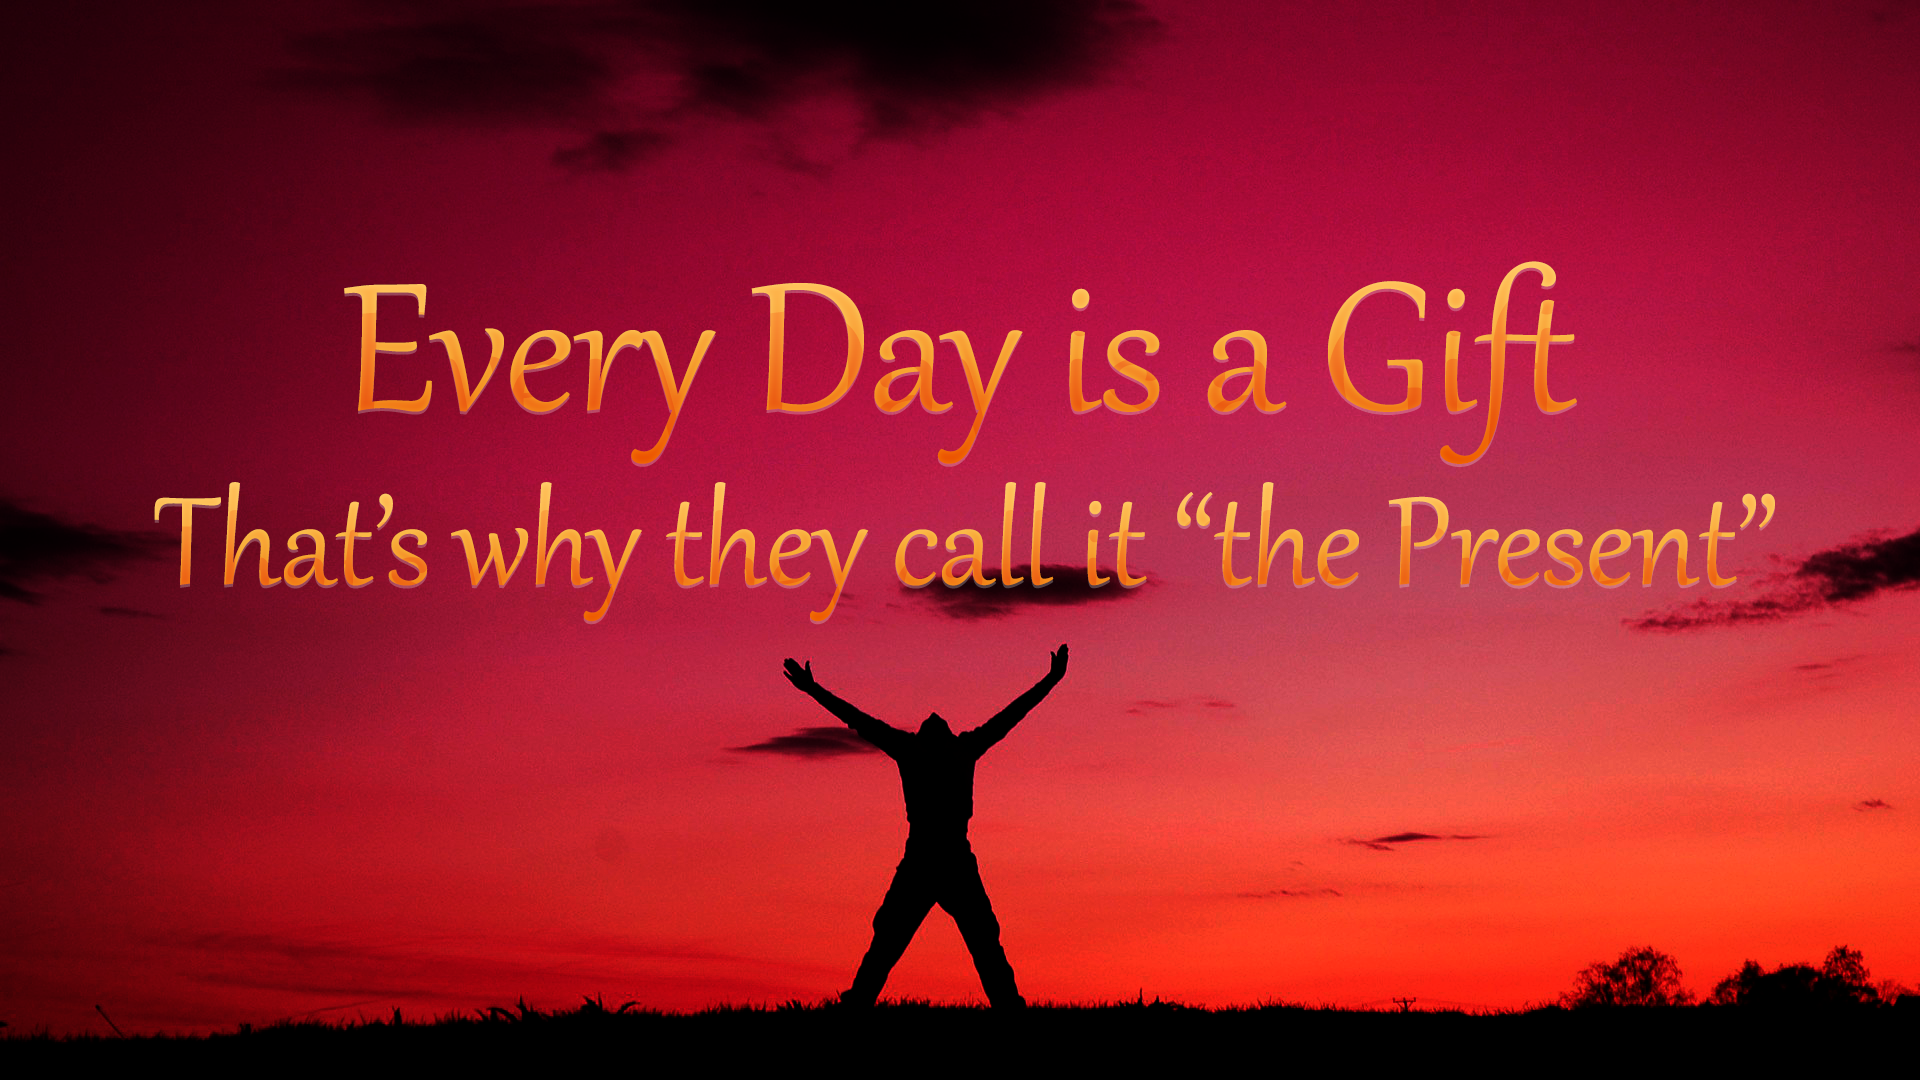 [Image] Every Day is a Gift